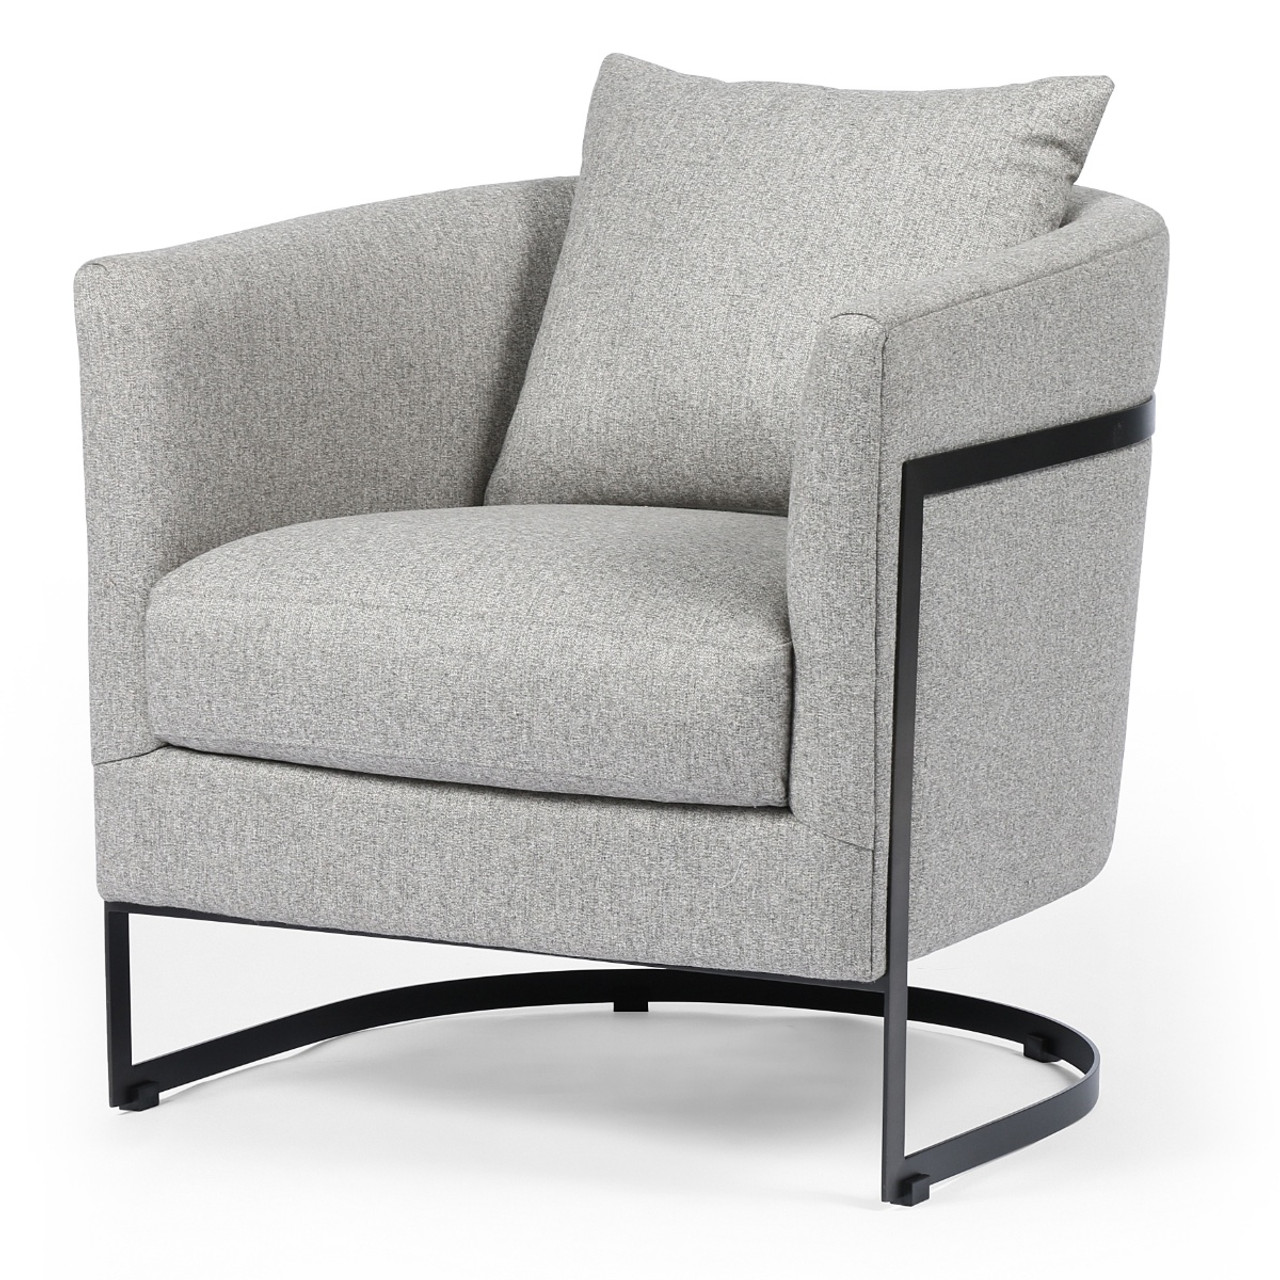 Liam Modern Grey Curved Club Chair  sc 1 st  Zin Home & Liam Modern Grey Curved Club Chair | Zin Home